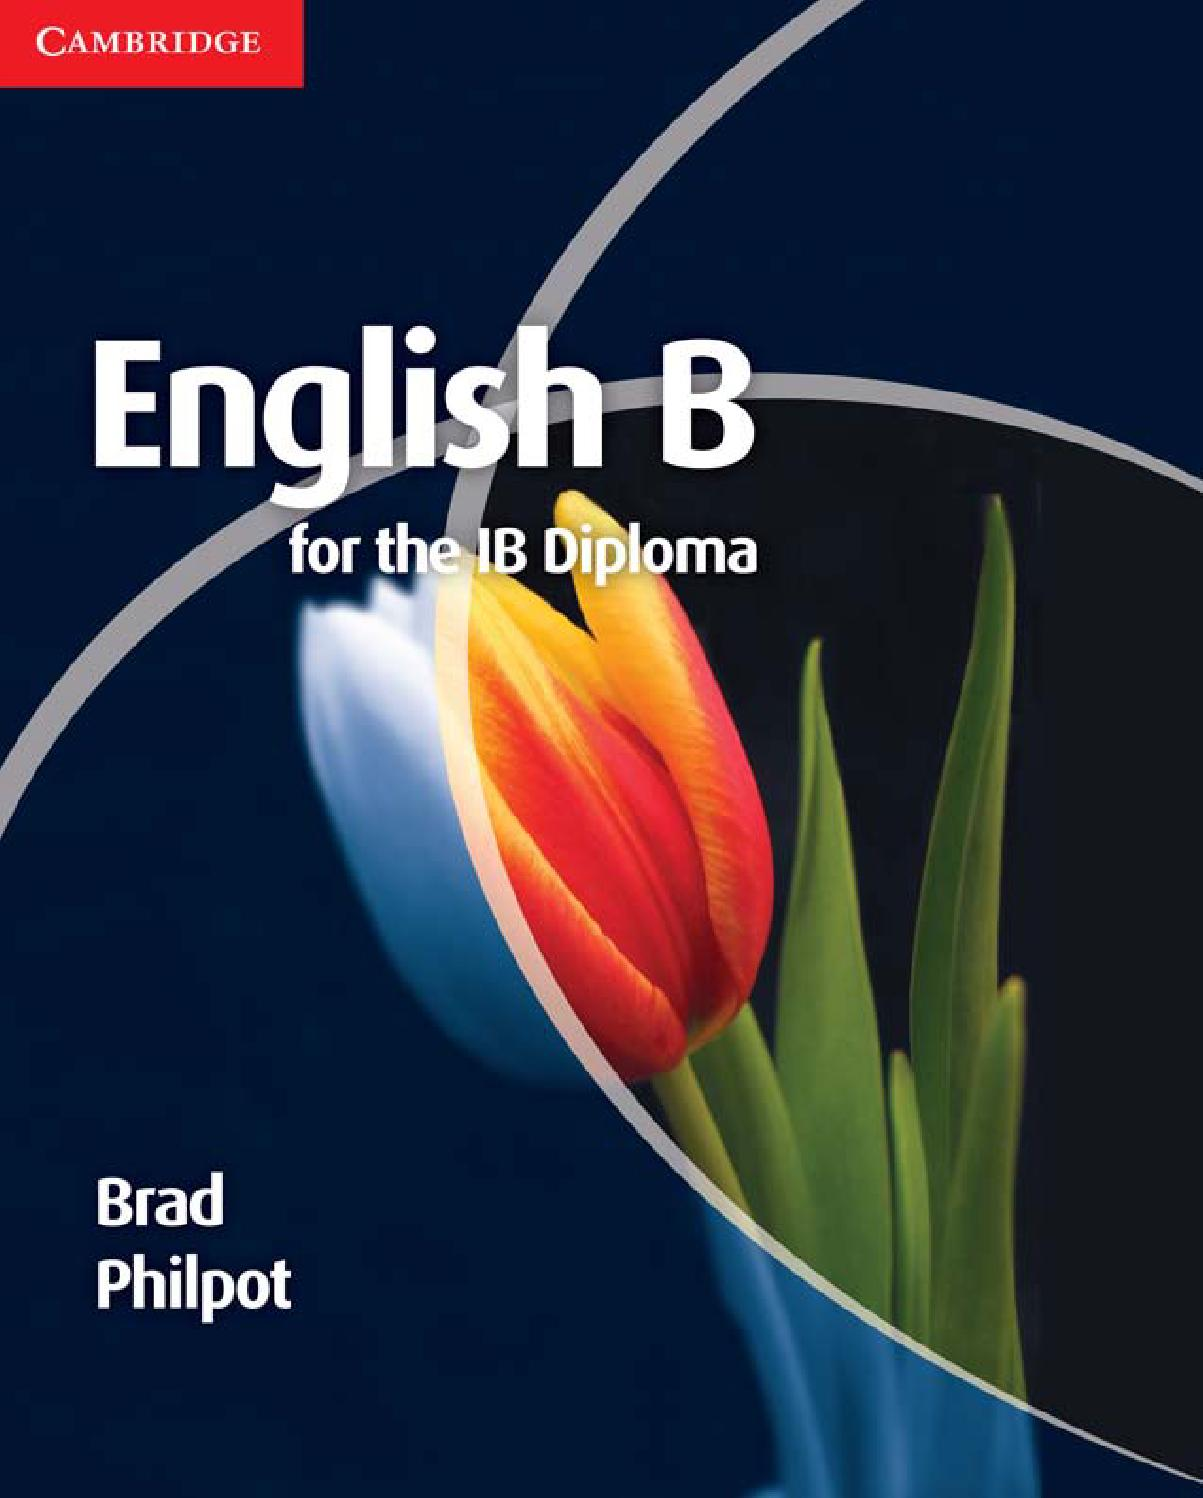 ib diploma In order to qualify for the ib diploma, each student must earn at least twenty-four points on ib assessments administered in the six curriculum areas.